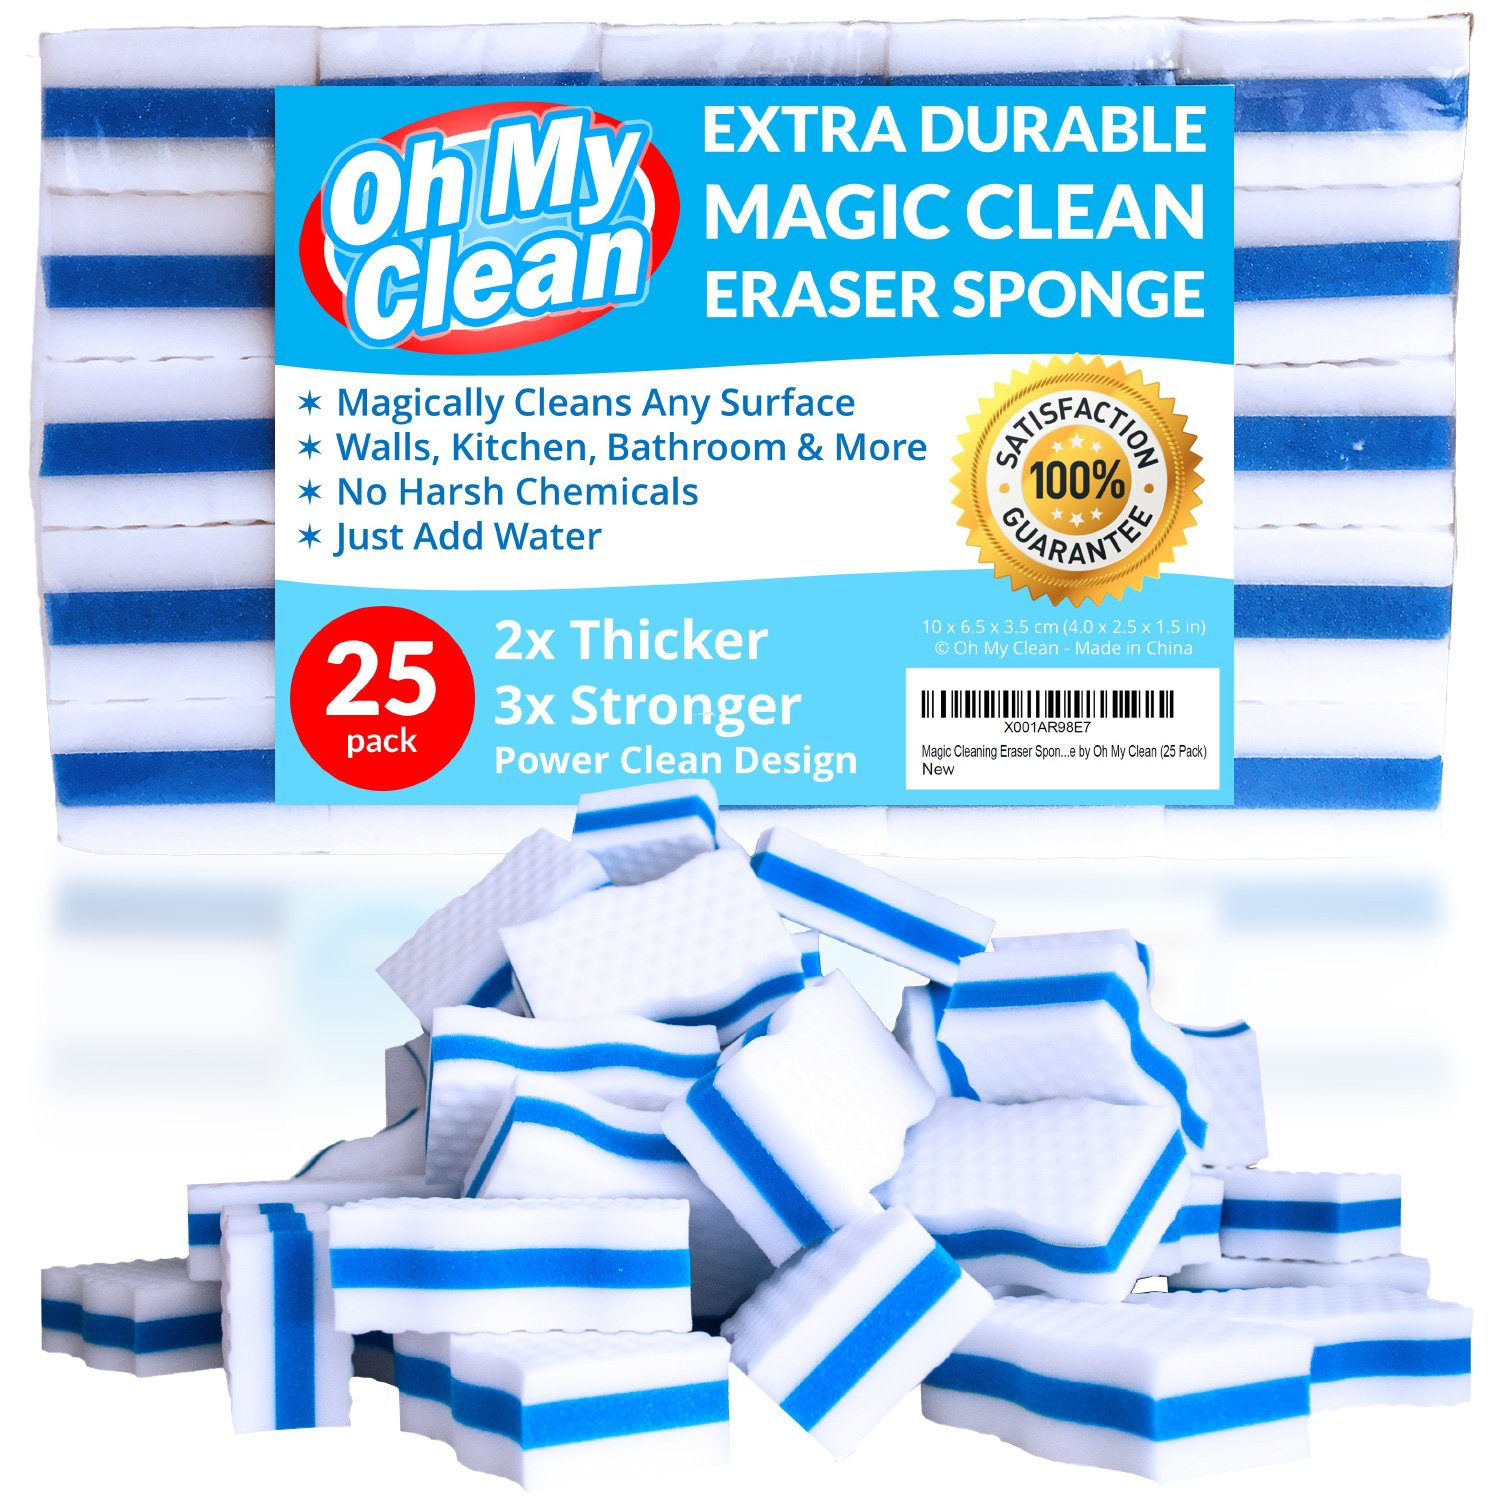 (25 Pack) Extra Durable Magic Cleaning Eraser Sponge - 2x Thick, 3x Stronger Melamine Sponges in Bulk - Multi Surface Power Scrubber Foam Pads - Bathtub, Floor, Baseboard, Bathroom, Wall Cleaner Oh My Clean